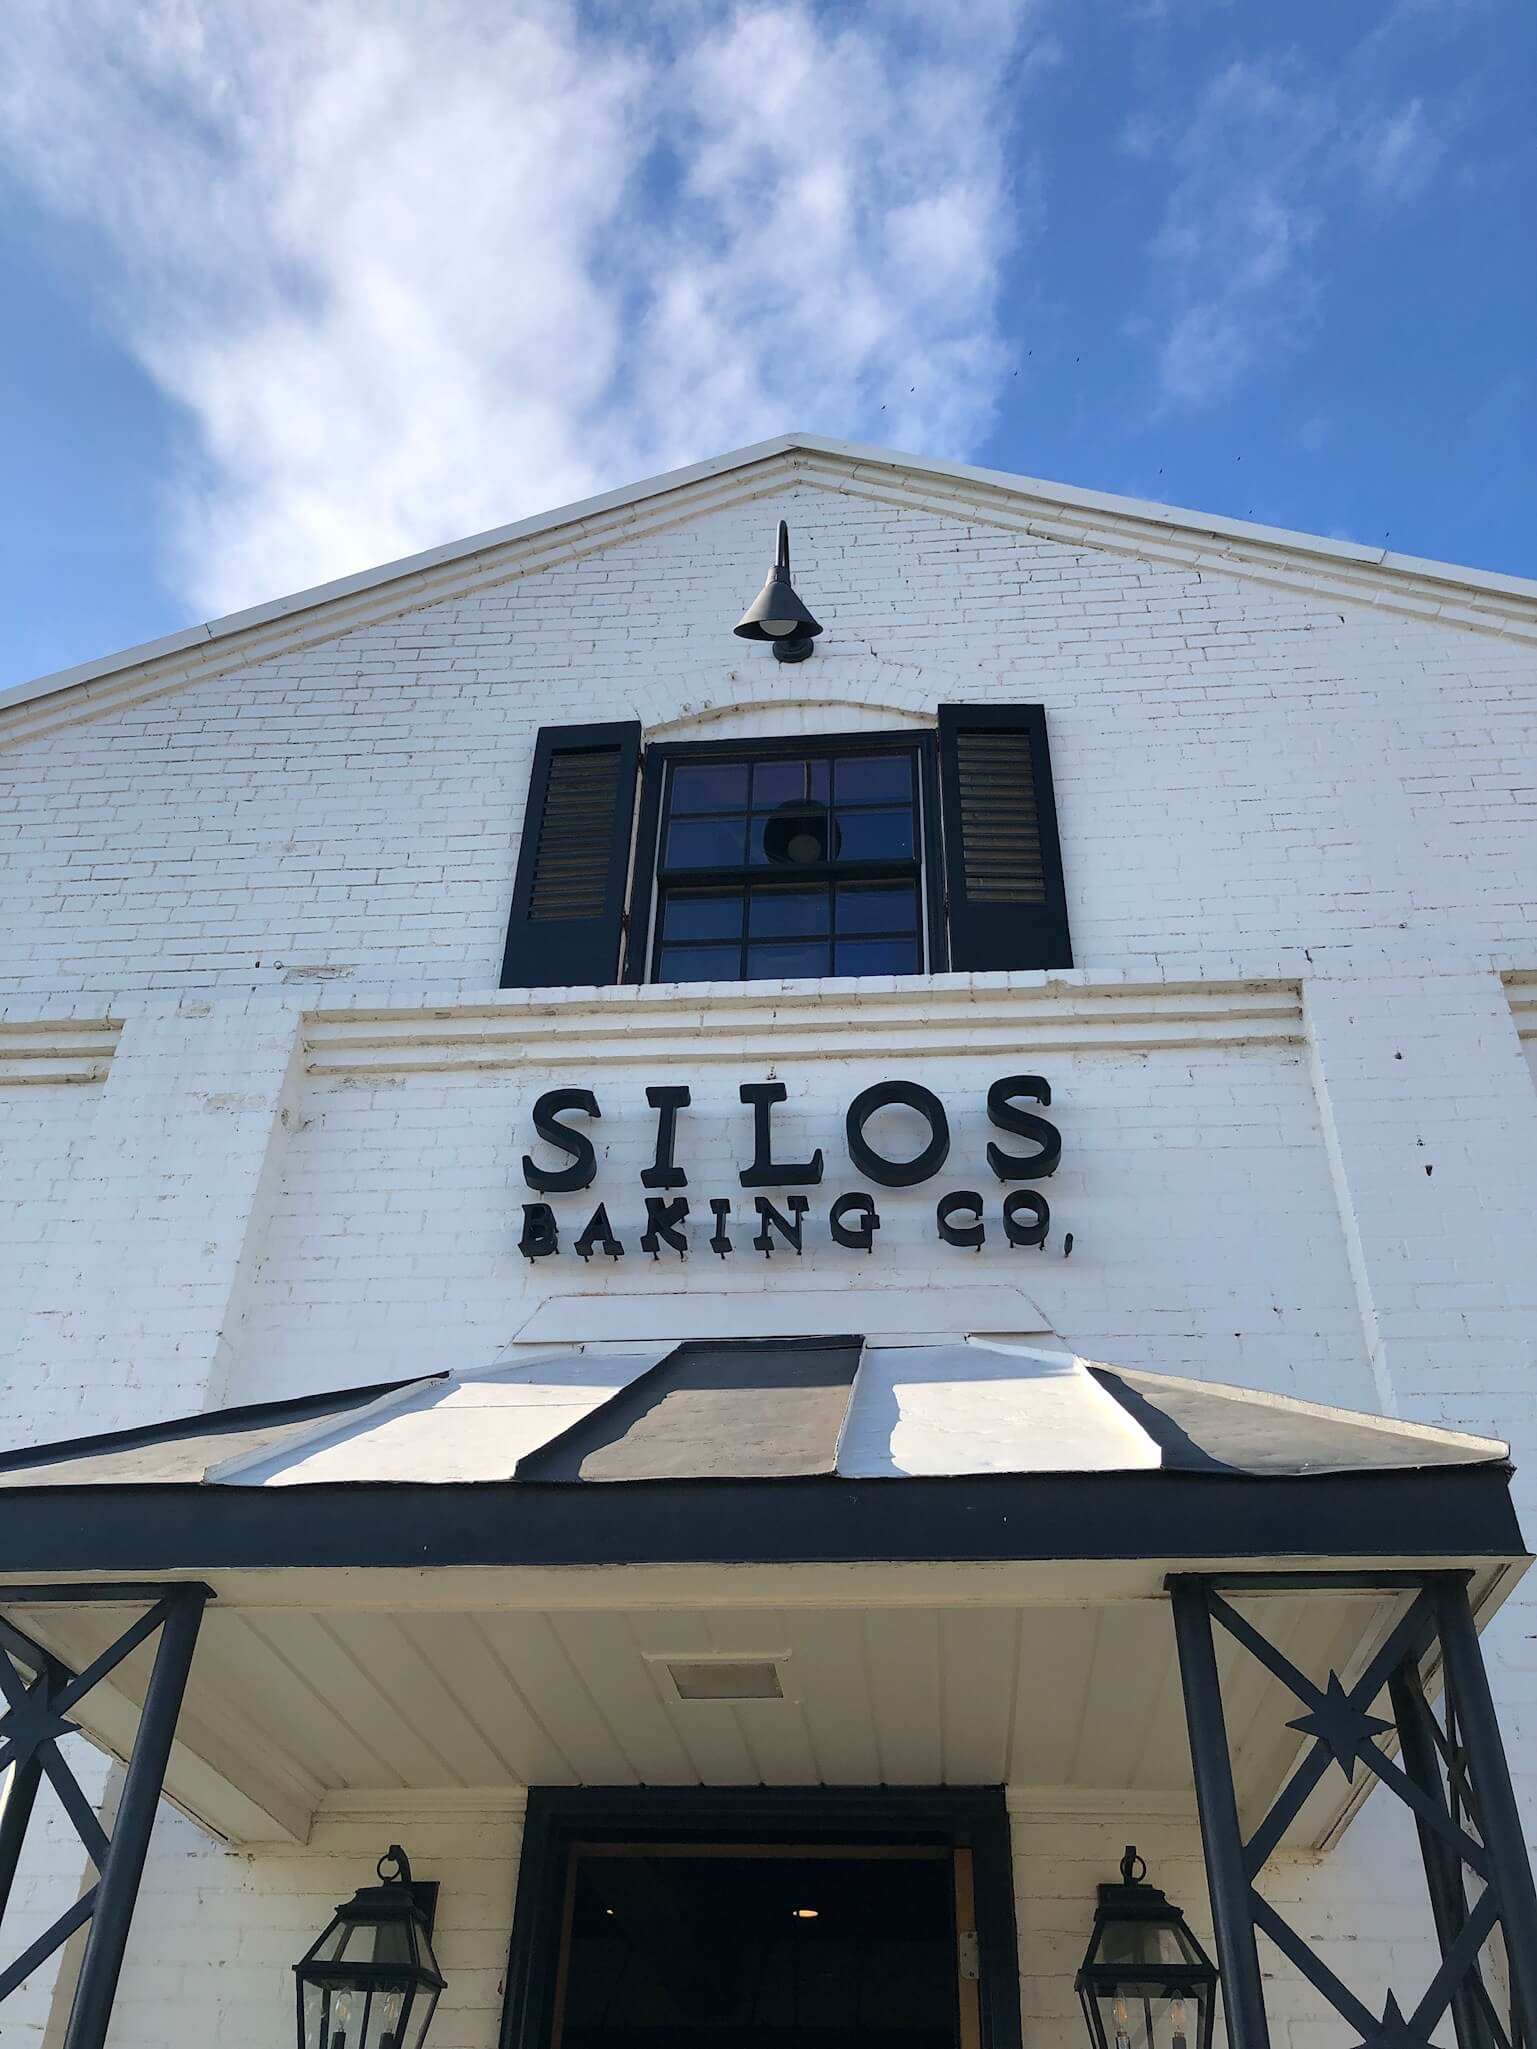 - When you're at the Silos you obviously have to check out the Silos Baking Co. If you've never been inside the bakery, brave the line. Or head to the food truck area where you will find Silos Bakery goods for sale, too! Every Silos cupcake I've had has been amazing, but hands down my favorite one has been the Lavender-Lemon cupcake. My mouth is watering just thinking about it!